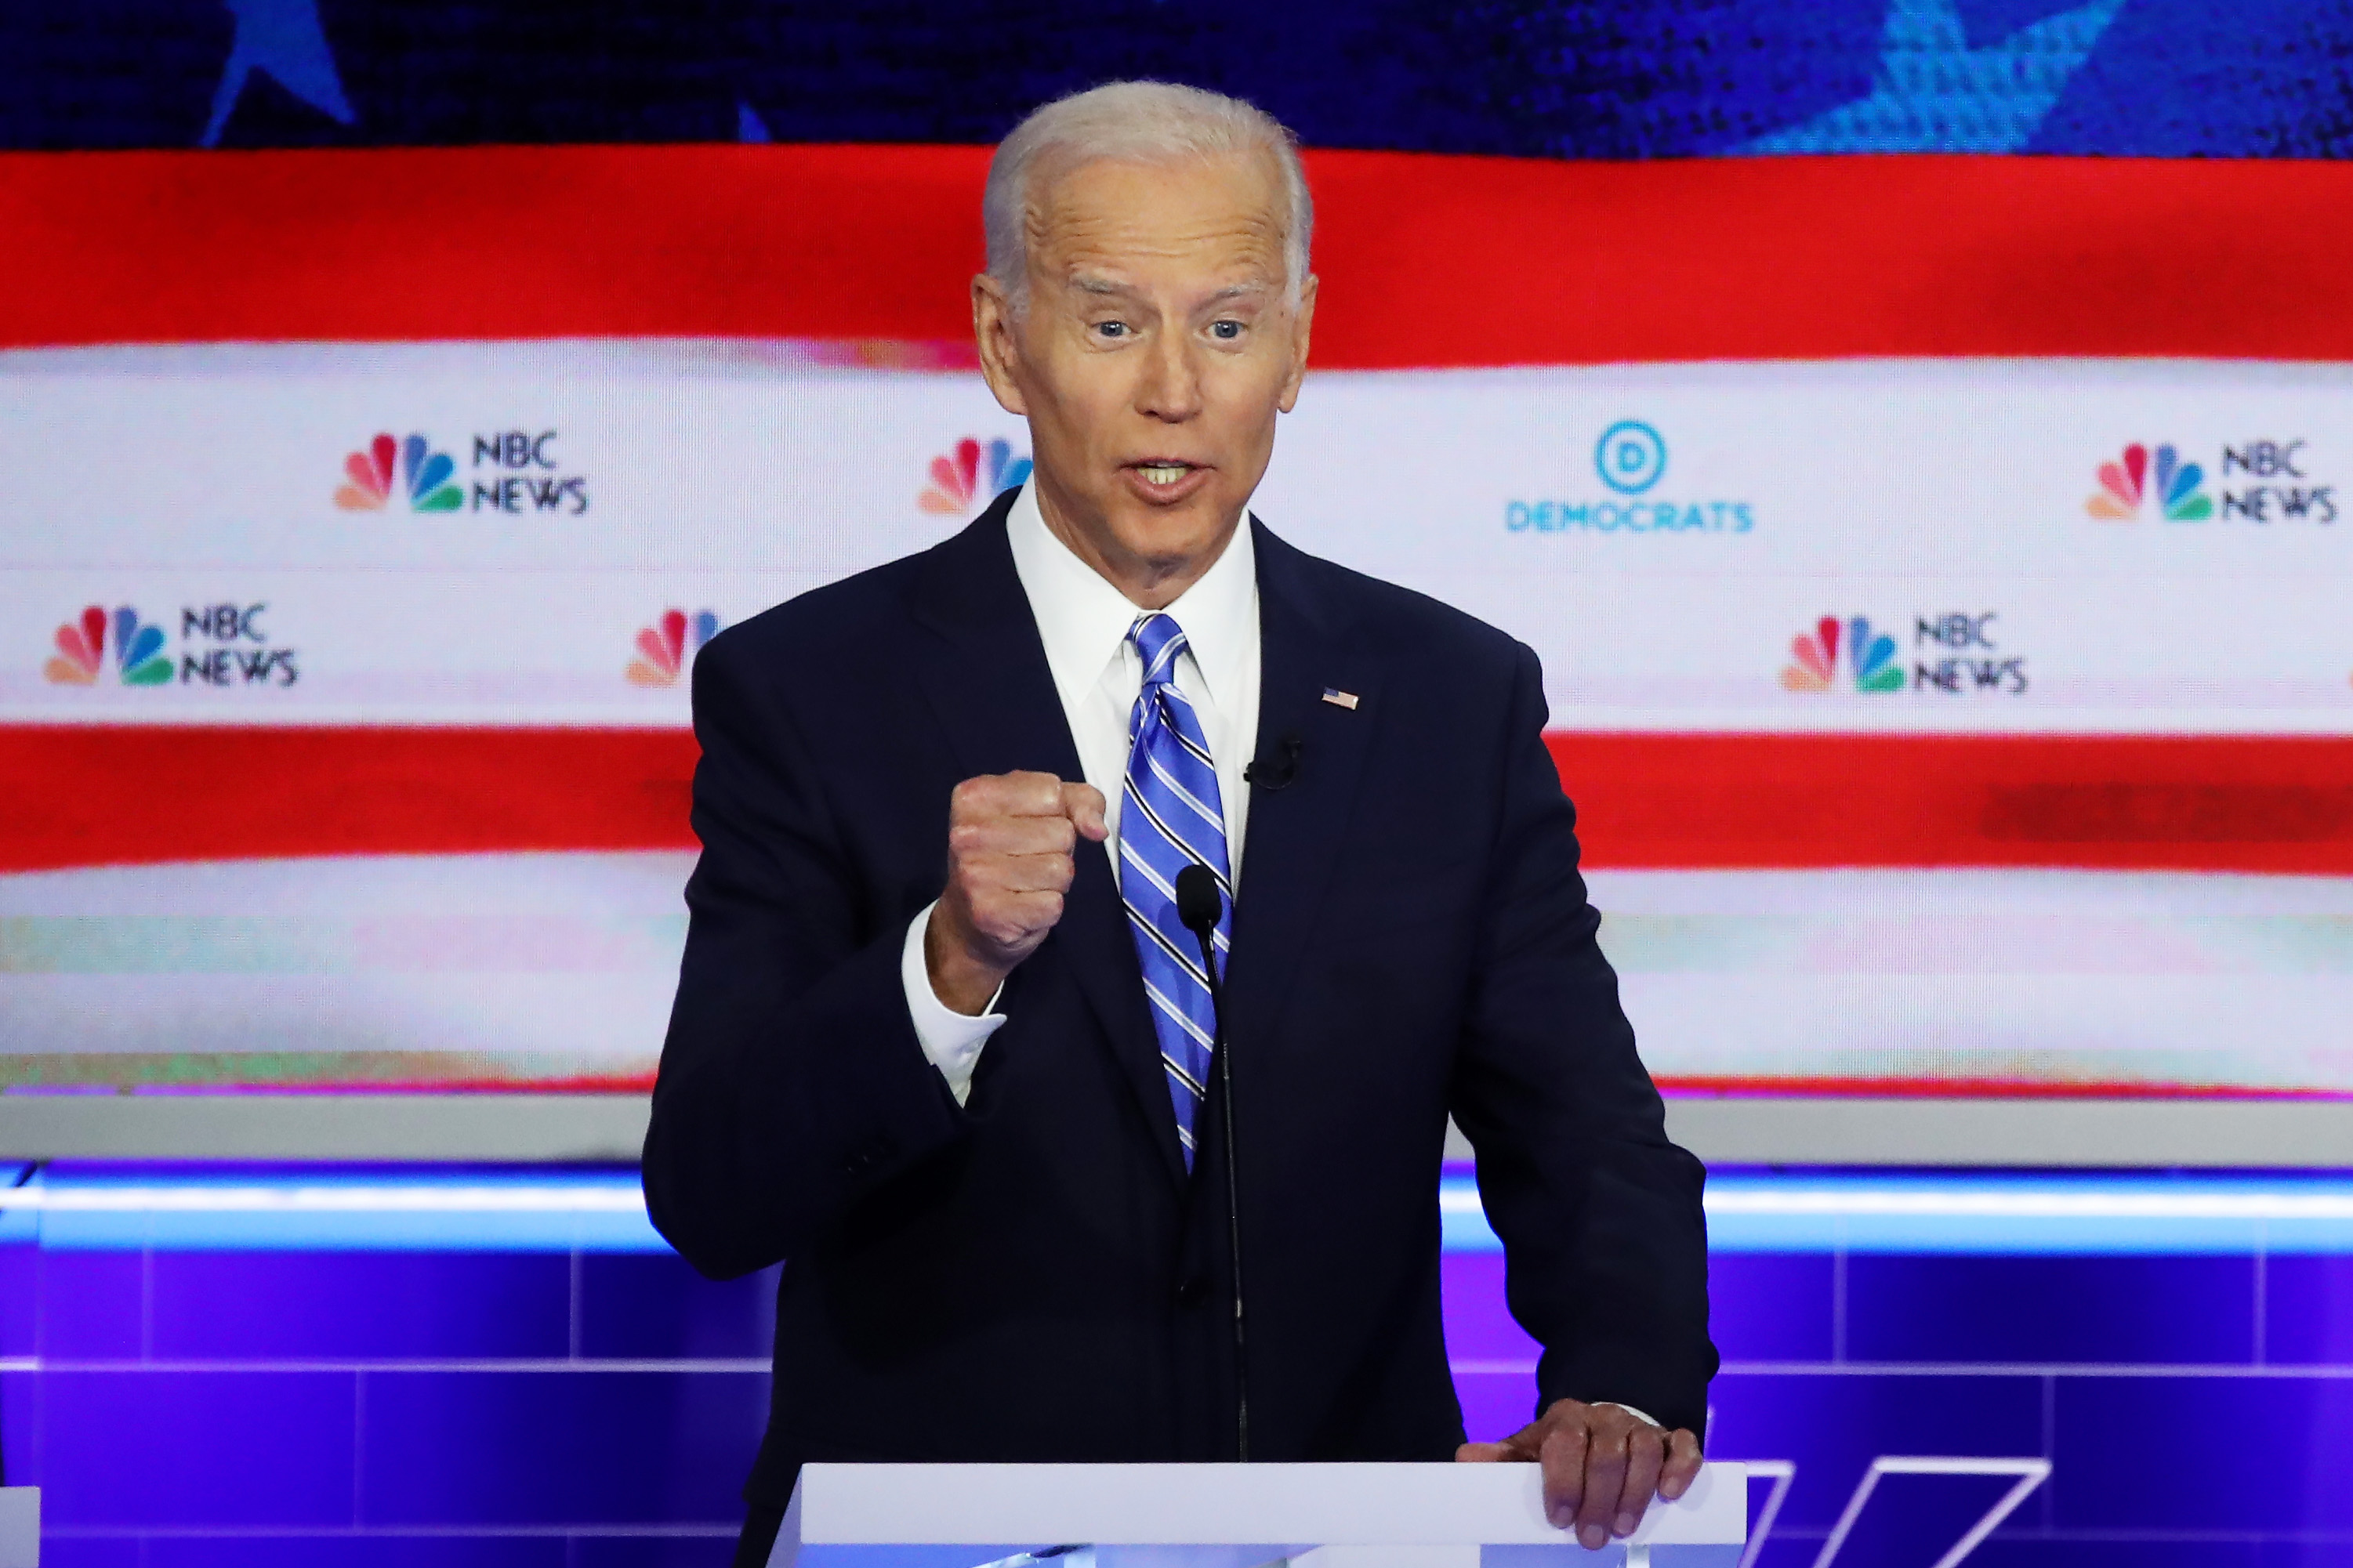 Biden blew his first chance to answer for his Iraq War vote